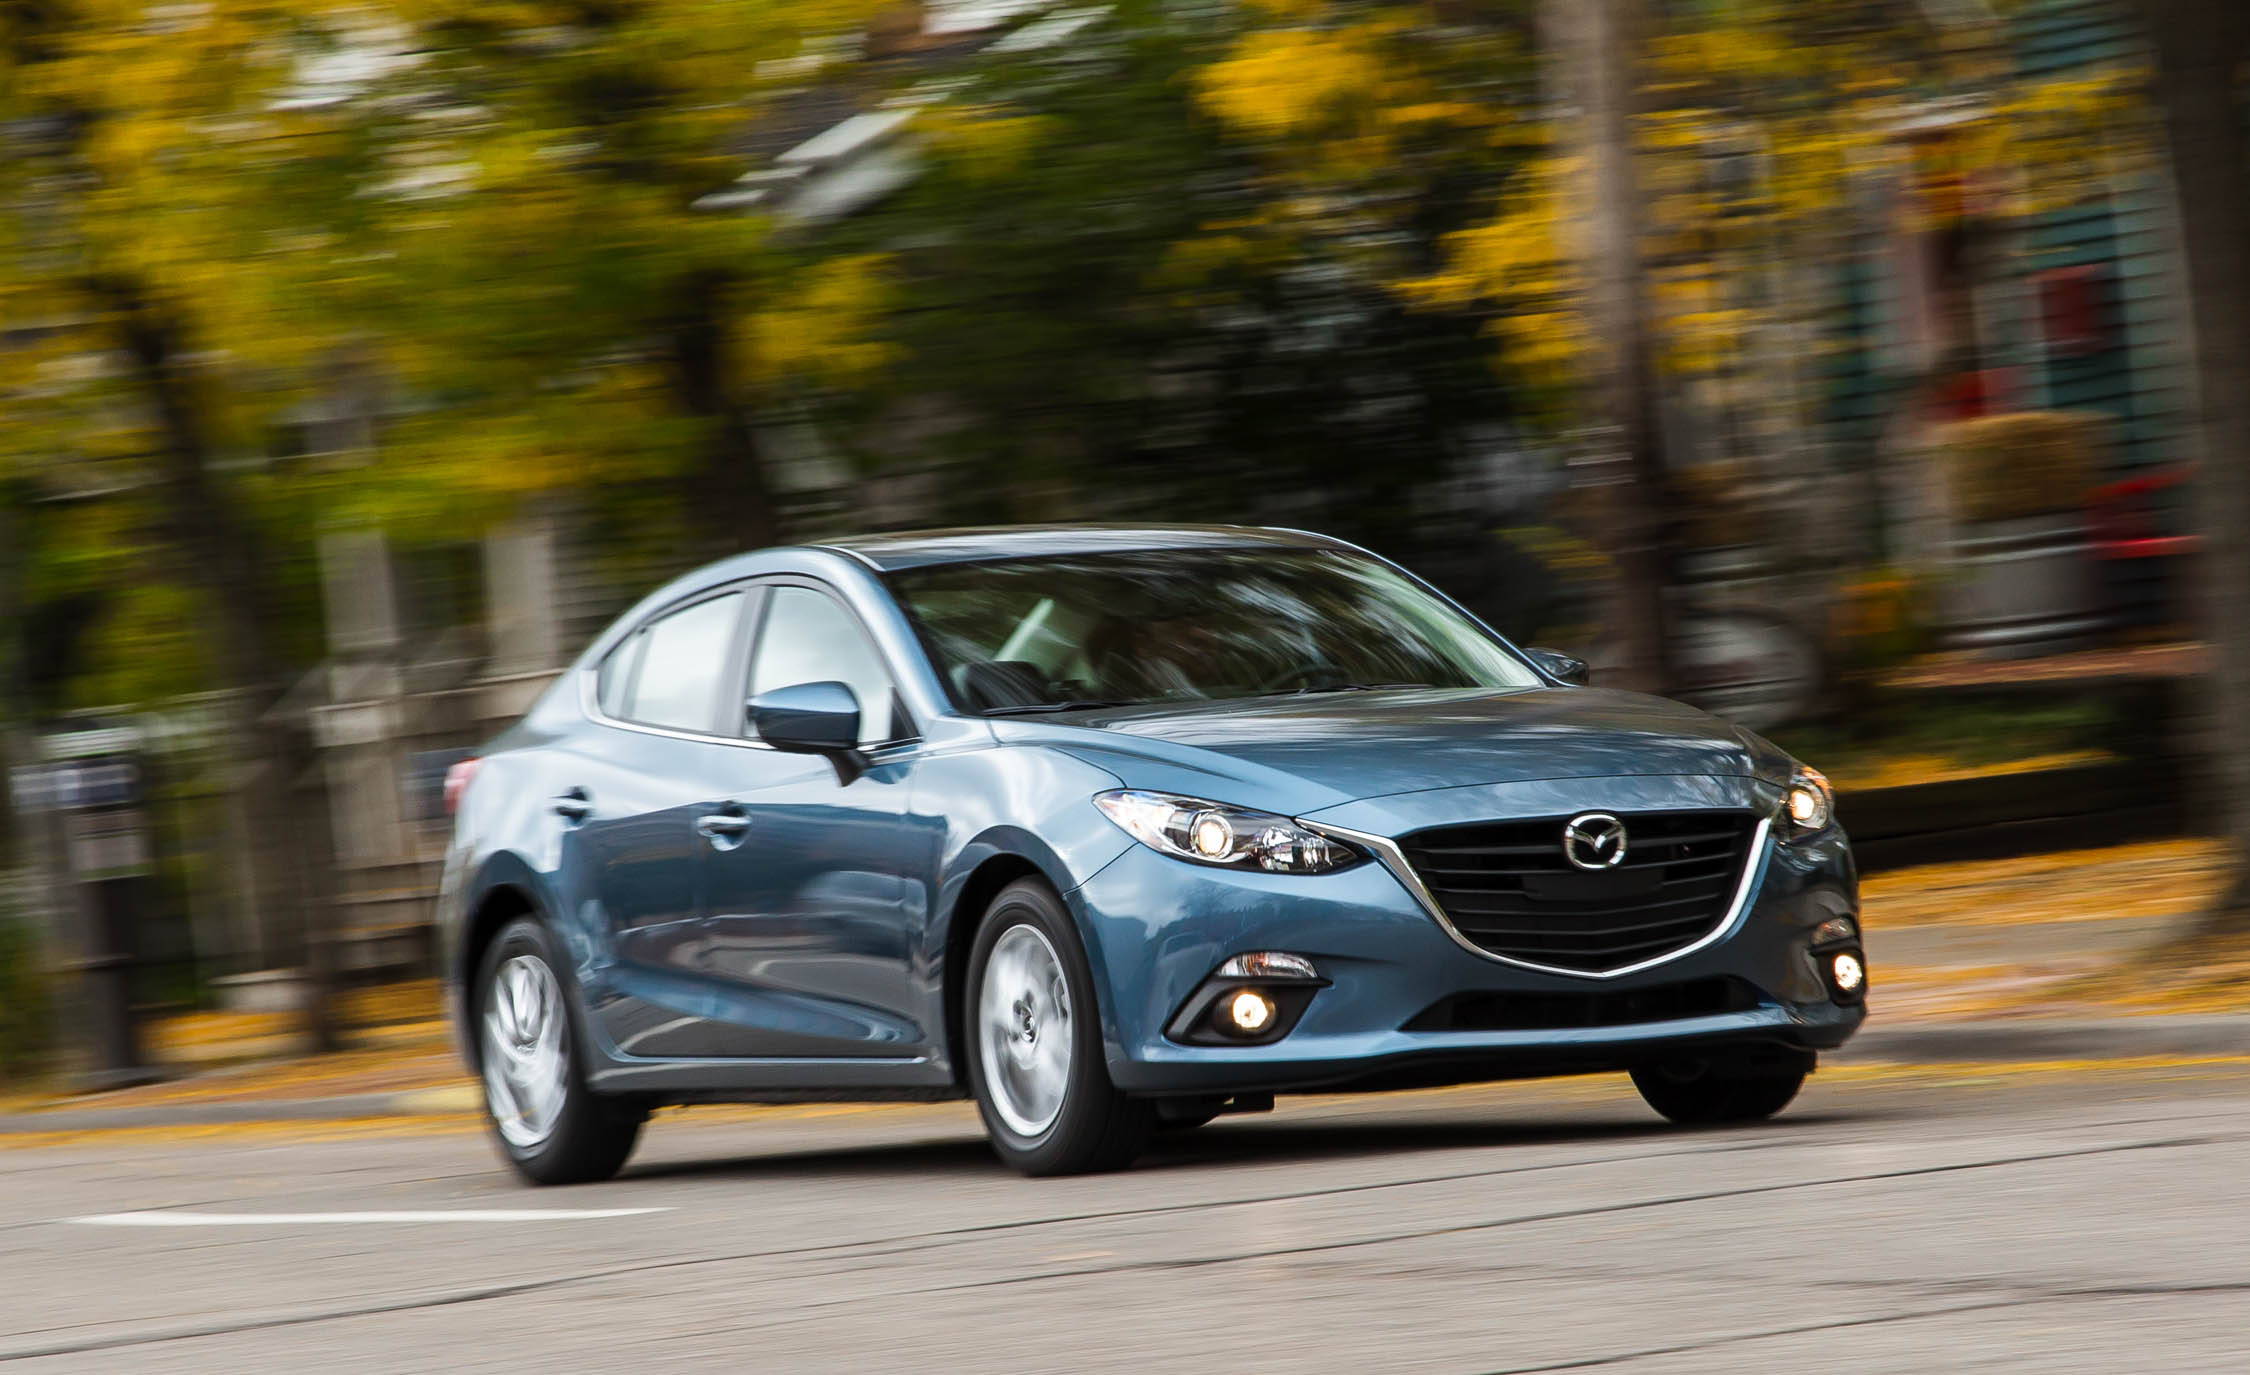 2016 Mazda 3 (View 2 of 22)